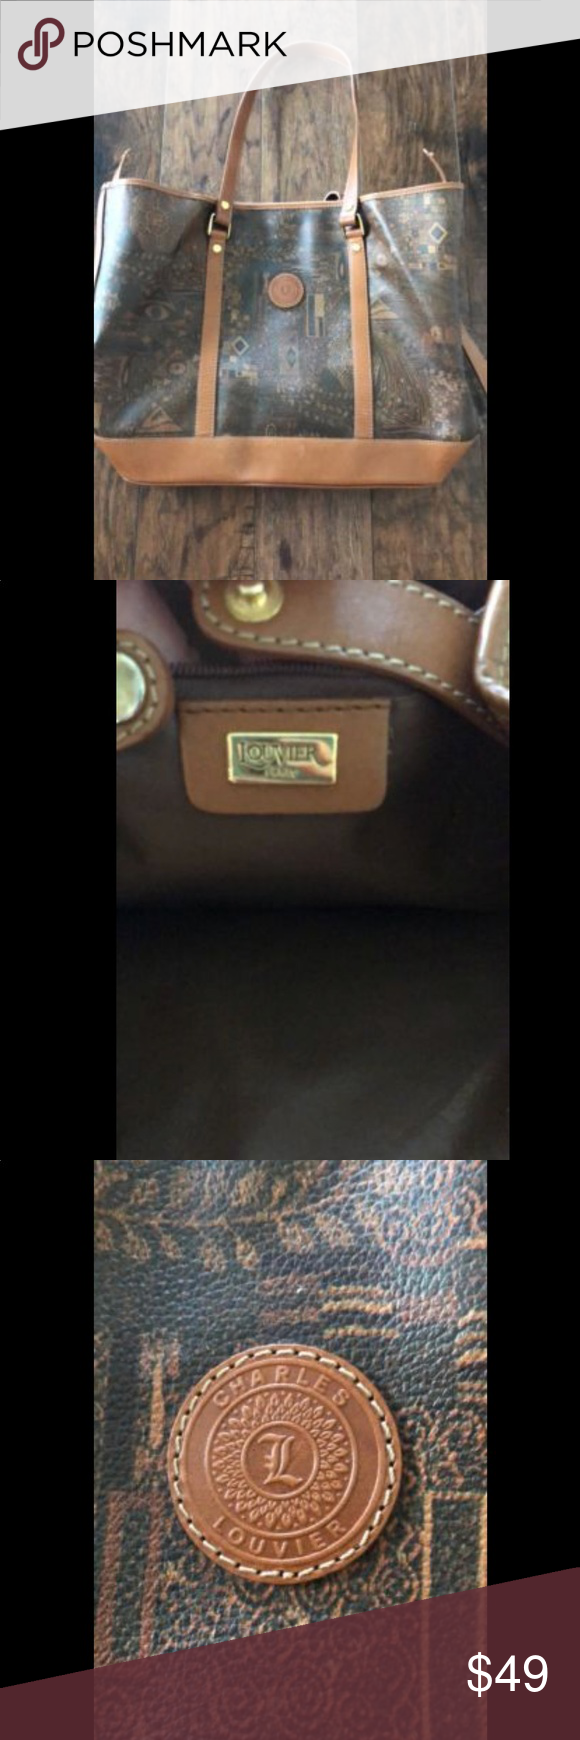 Charles Louvier Bag Pyramid Eye Tan Brown Good Used Condition Thank You For Passing By Check My Other Items And Feel Free To Make An Offer B